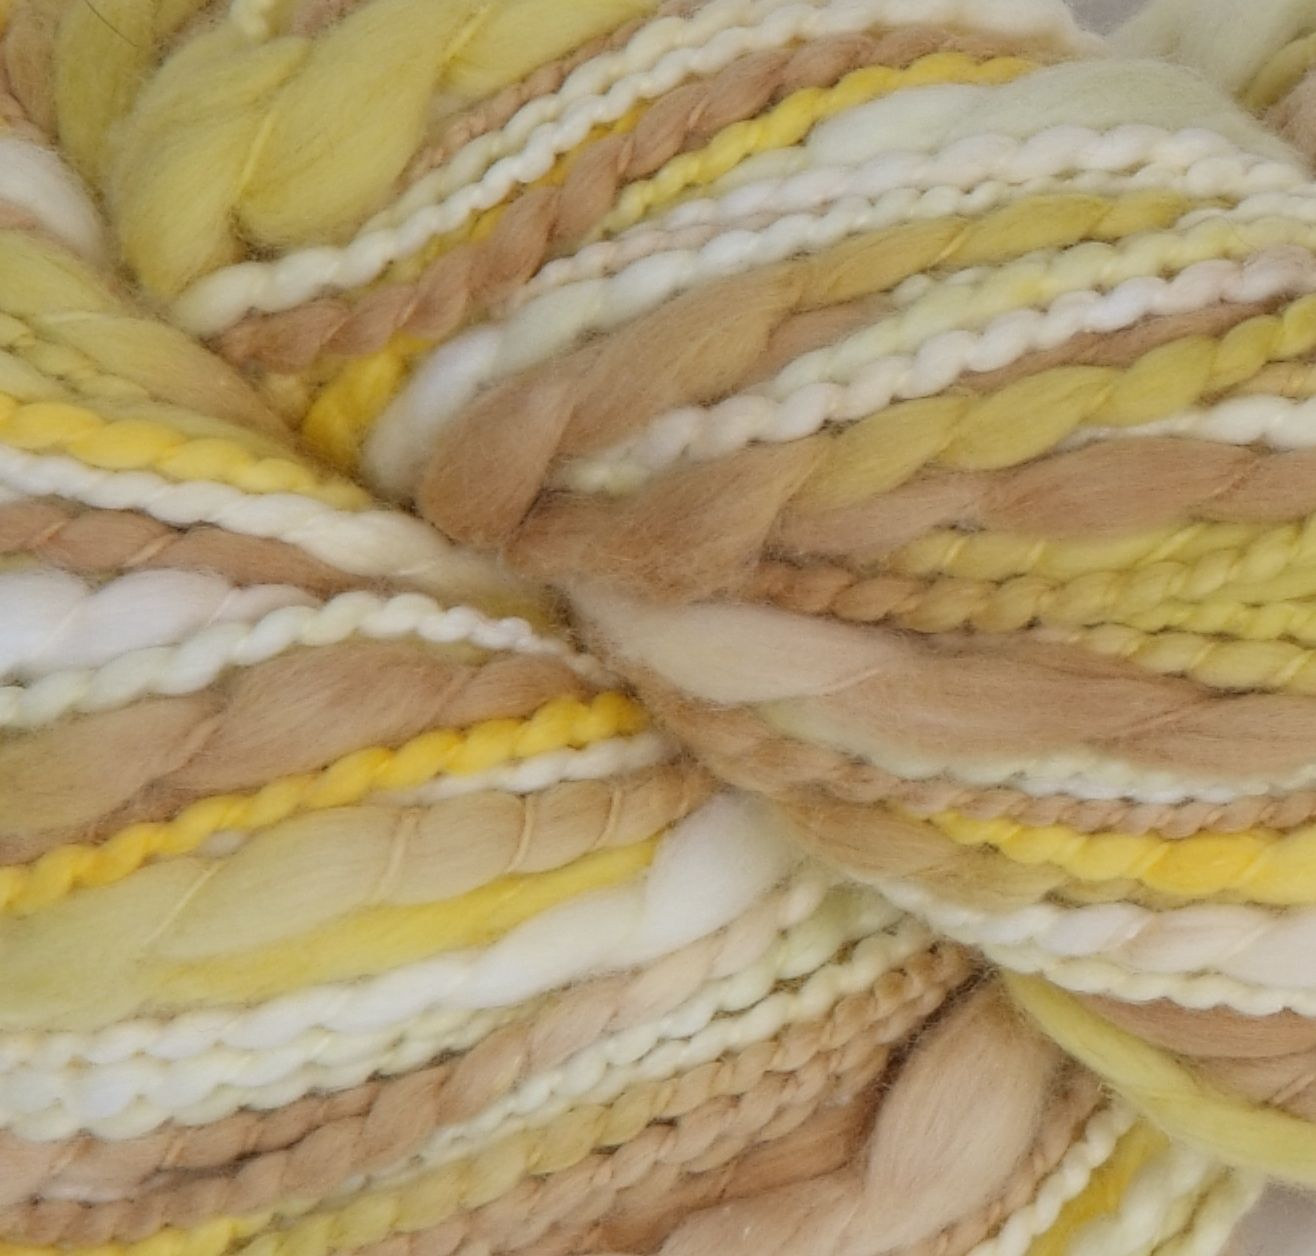 Lecco in Yellows.  Lecco is our new 100% Cotton yarn.  Each ball weighs 100g (3.5 oz) and has approximately 100m (110 yds).  We recommend a needle size of 6-8 mm/ 10–11 US to get 3.5 stitches per in.    Lecco is a super soft thick and thin 100% cotton yarn that provides lots of texture for that special project in mind.  Available in solid and gorgeous variegated color palettes. Perfect yarn for newborn and beyond. Visit our website to find a retailer near you.